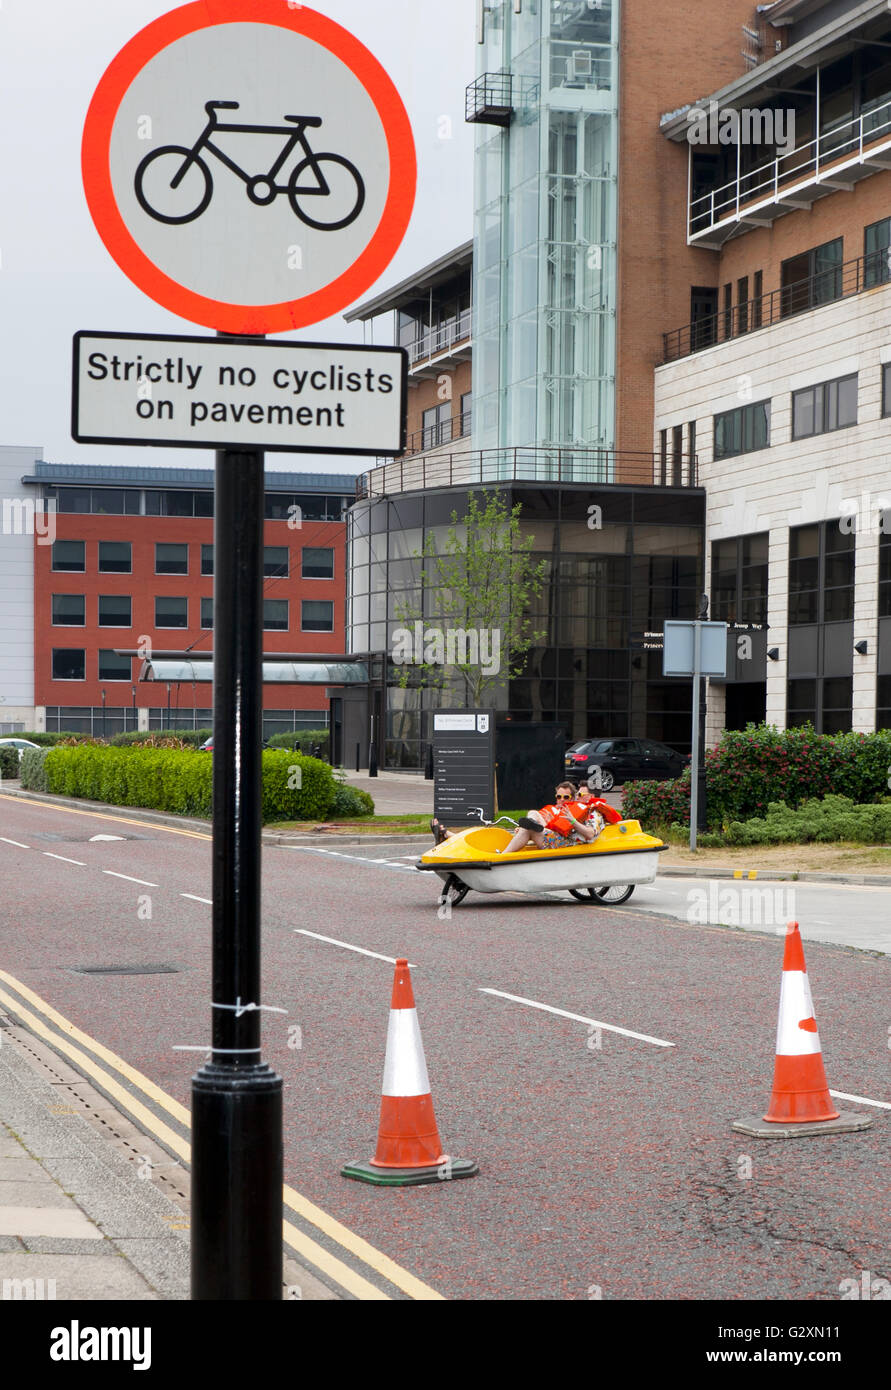 a uk no access restriction restricted park parking warning sign signs prohibit prohibited car vehicle vehicles forbid - Stock Image